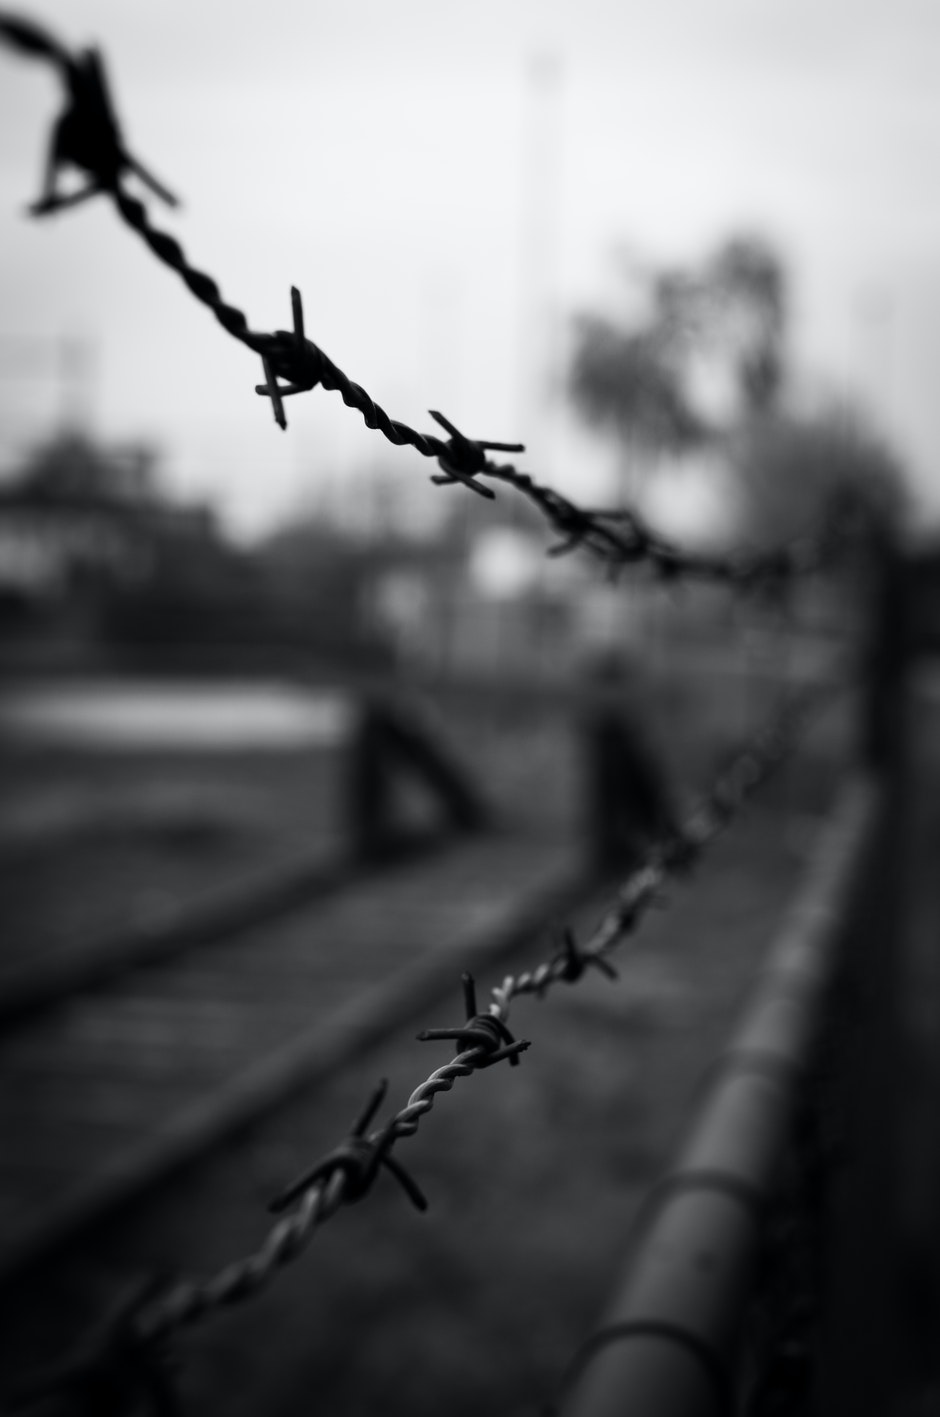 barbed wire, black-and-white, crime